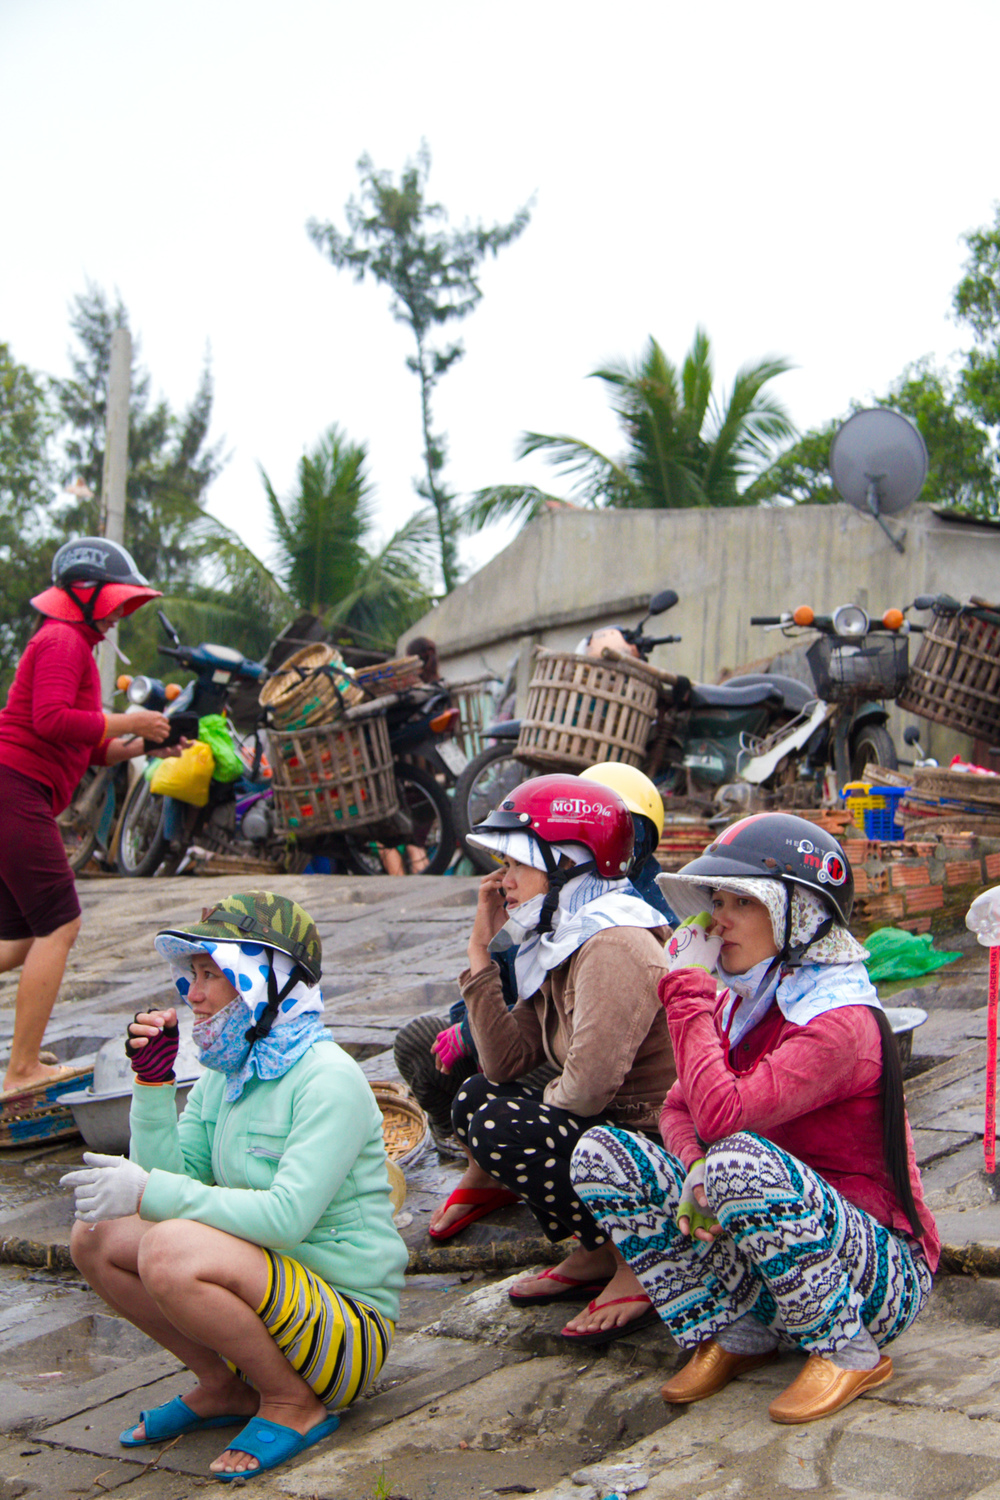 Vietnam_Travel_Photographer_030.JPG